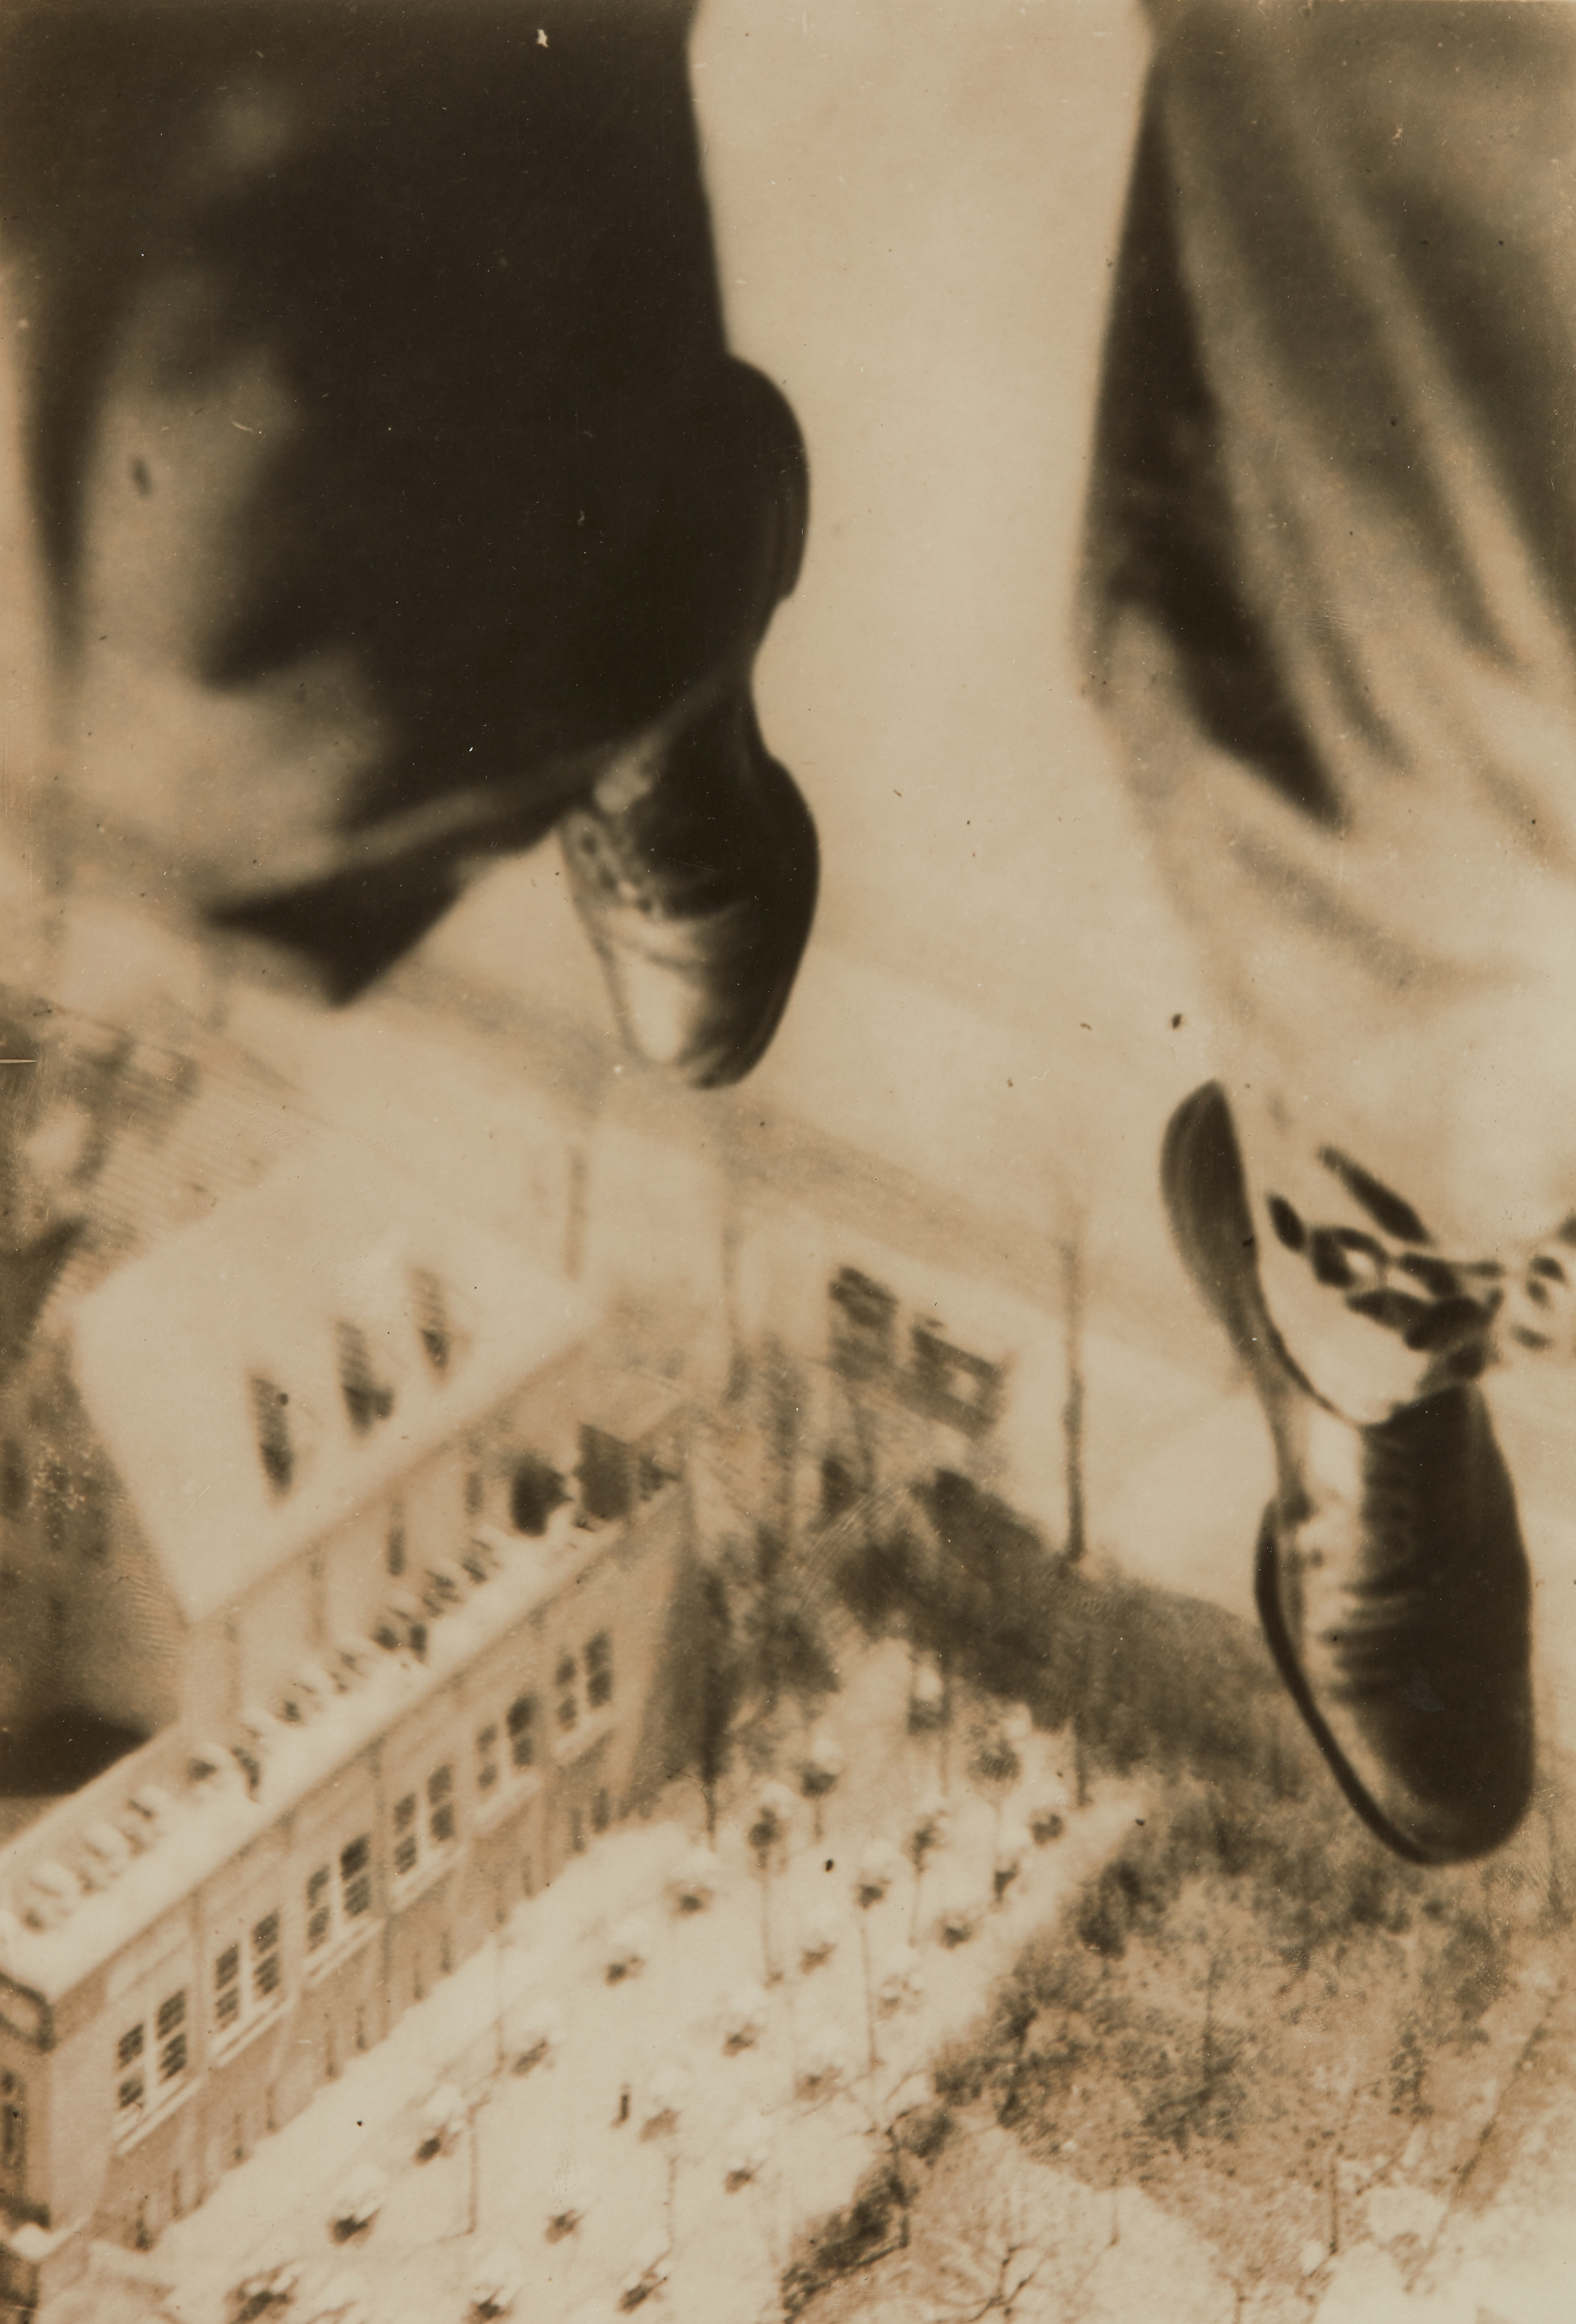 Berlin Fallschirmspringer, which translates as Berlin Parachute Jumper, from Willi Ruge's 1931 series, I Photograph Myself During a Parachute Jump.